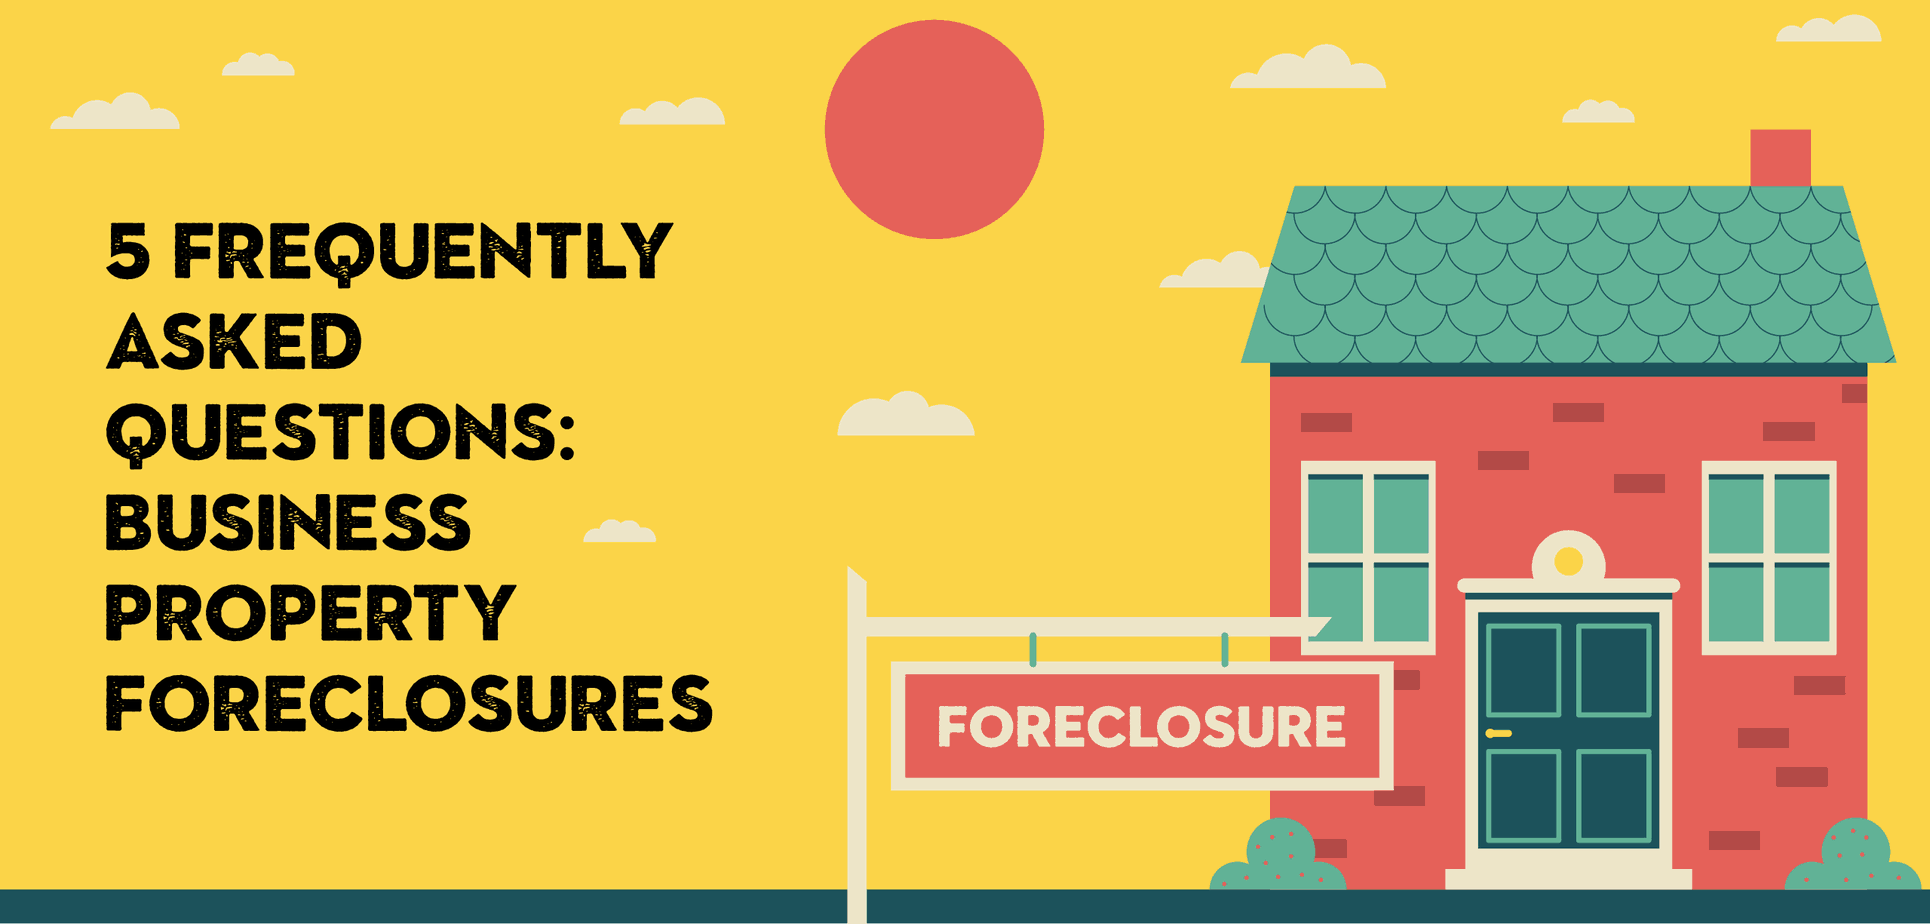 5 Frequently Asked Questions: Business Property Foreclosures